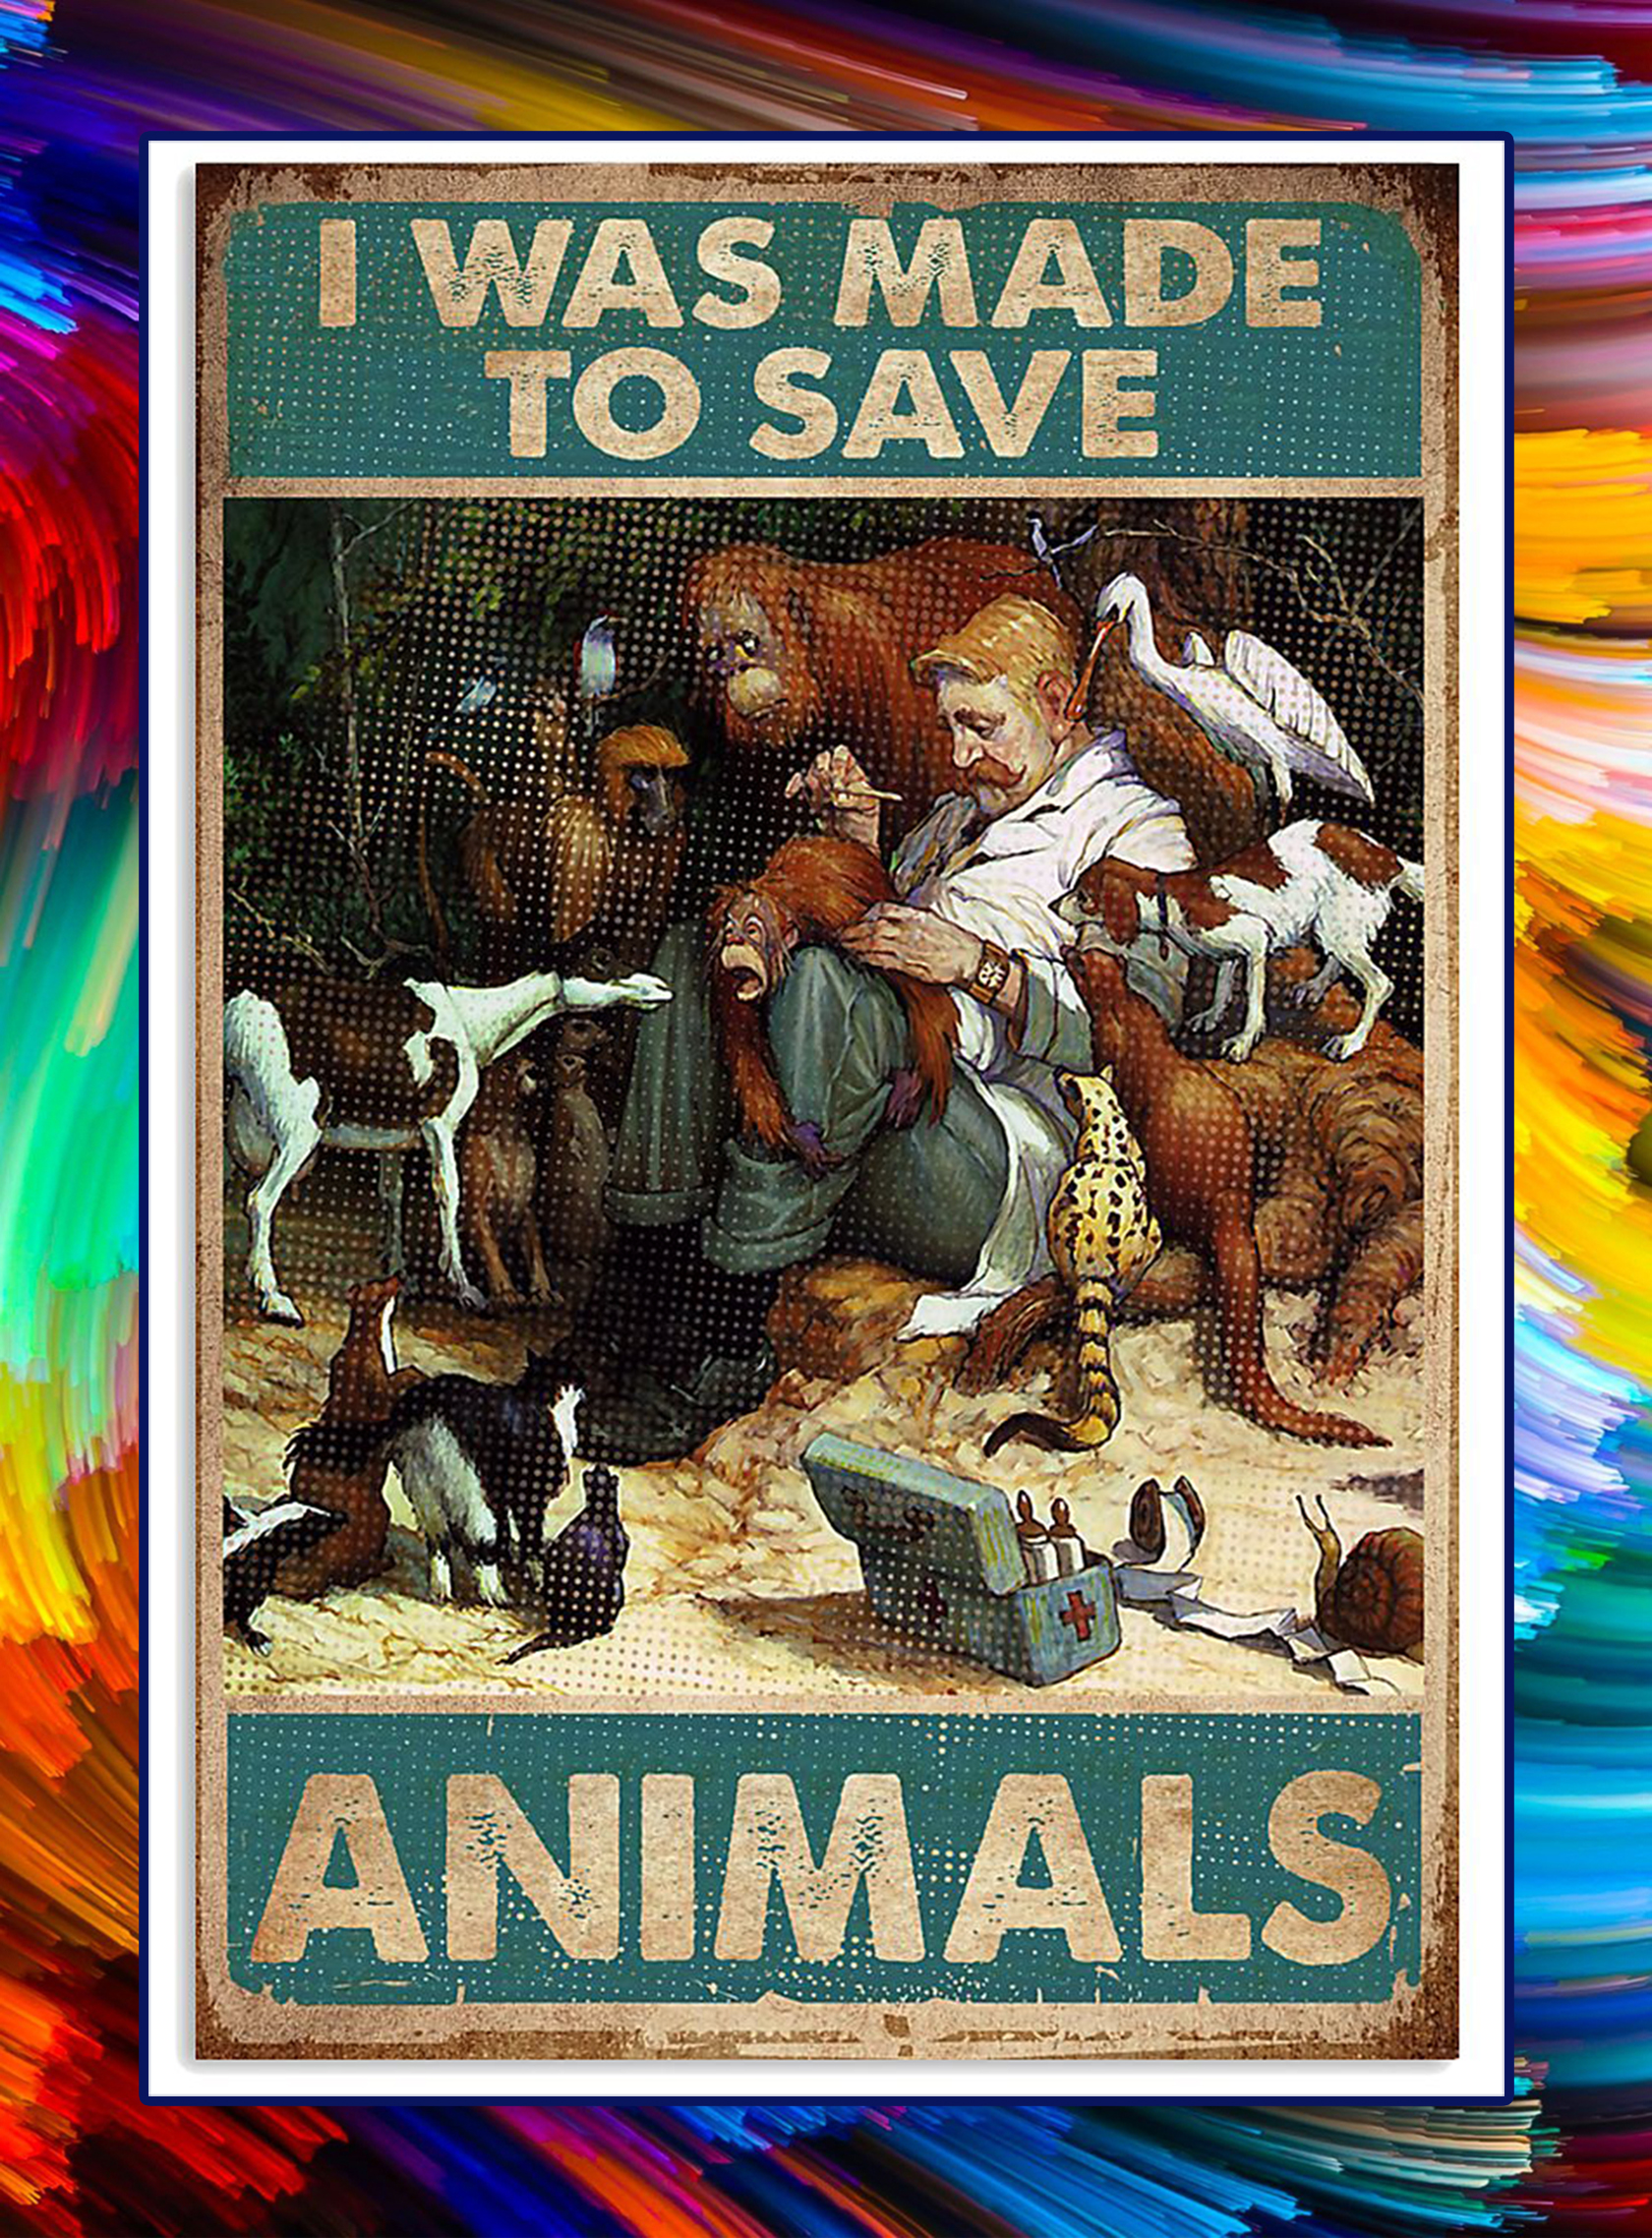 Veterinarian i was made to save animals poster - A2